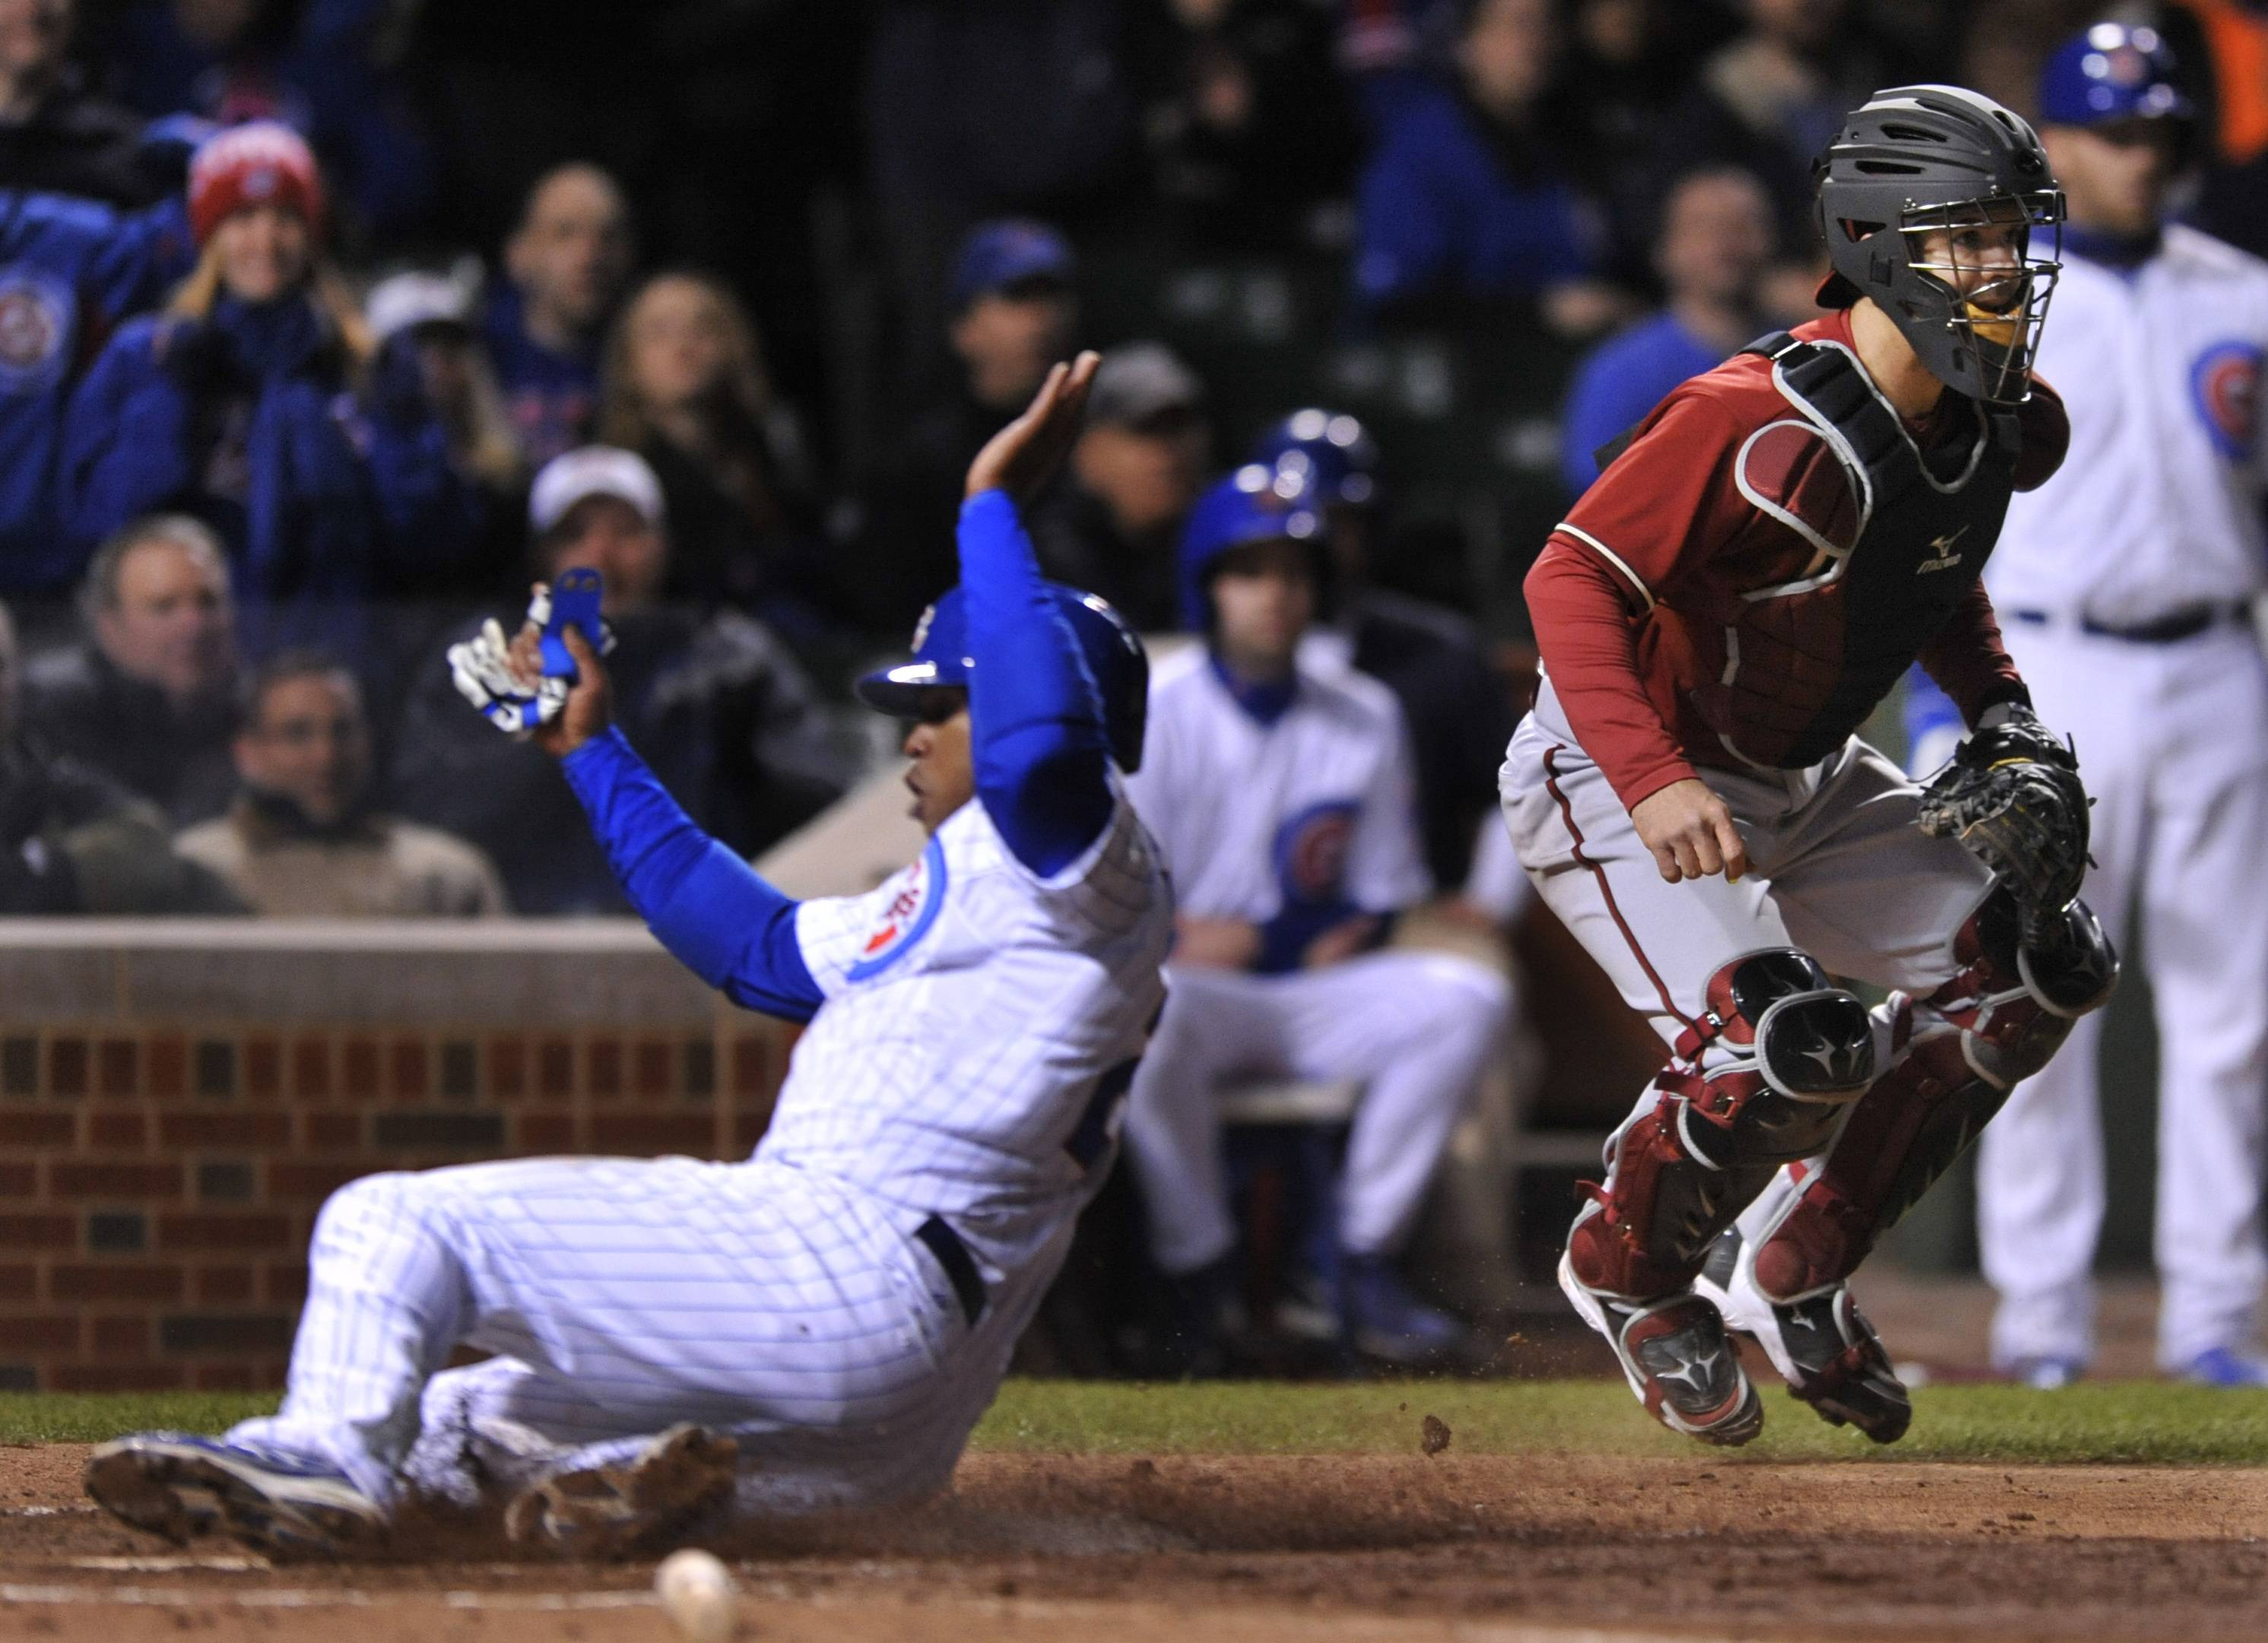 The Cubs' Luis Valbuena slides safely into home plate on a sacrifice fly as the ball rolls away from Diamondbacks catcher Tuffy Gosewisch in the fifth inning Tuesday at Wrigley Field.